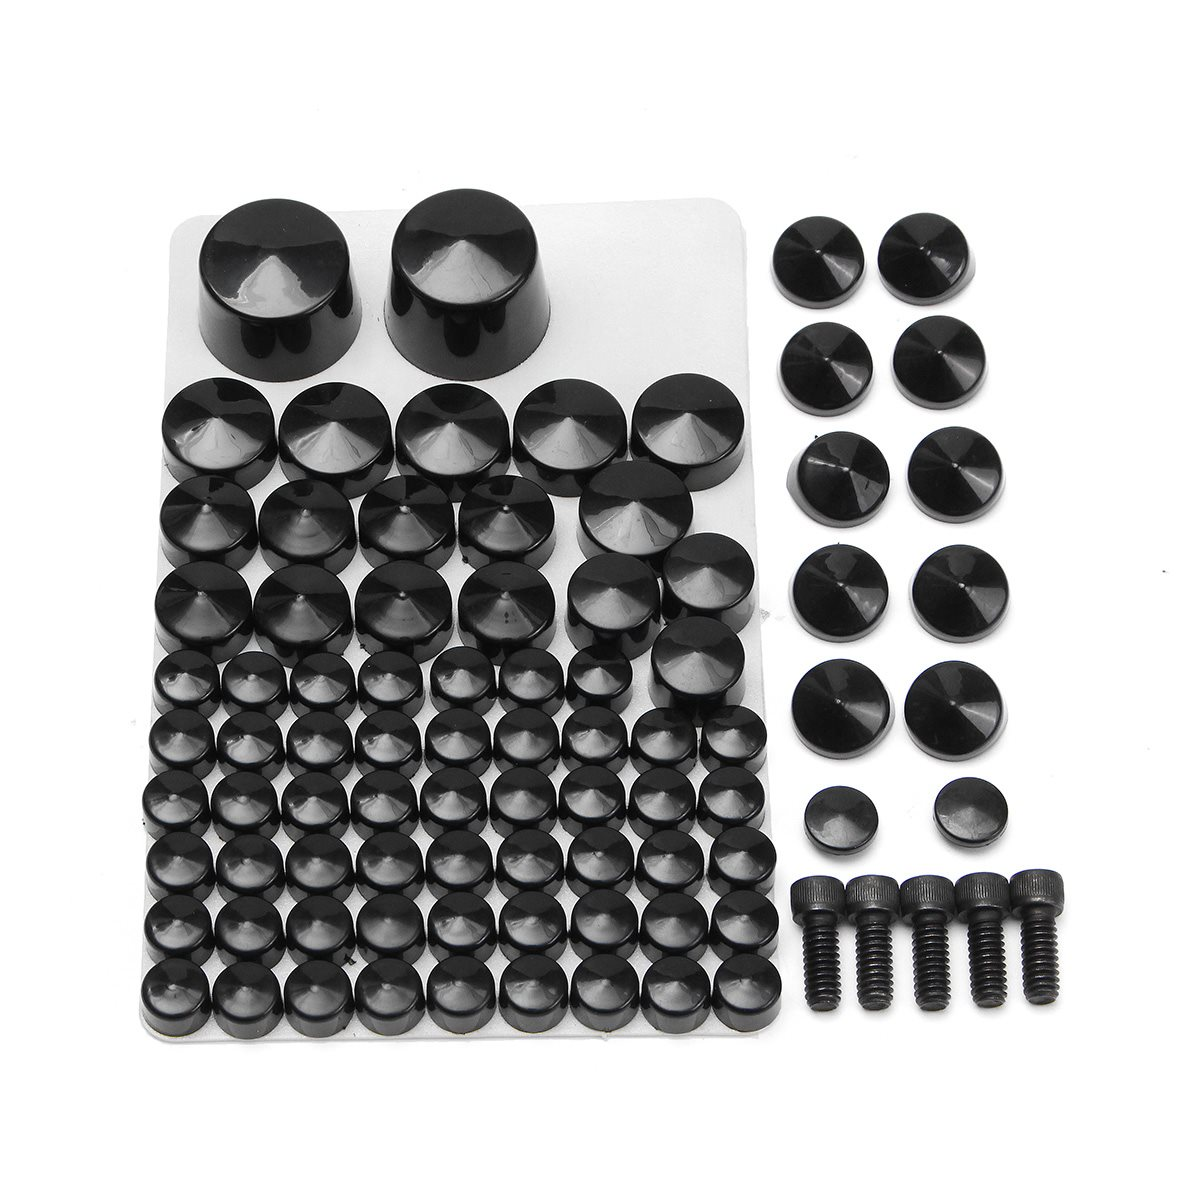 81 Pcs Chrome Motorcycle Toppers Cover Bolts For Harley Softail/Twin/Cam Models  2007-2013 ABS Plastic Black aftermarket free shipping motor parts toppers caps for 2007 2008 2009 2010 2011 2012 harley davidson softail twin cam chrome